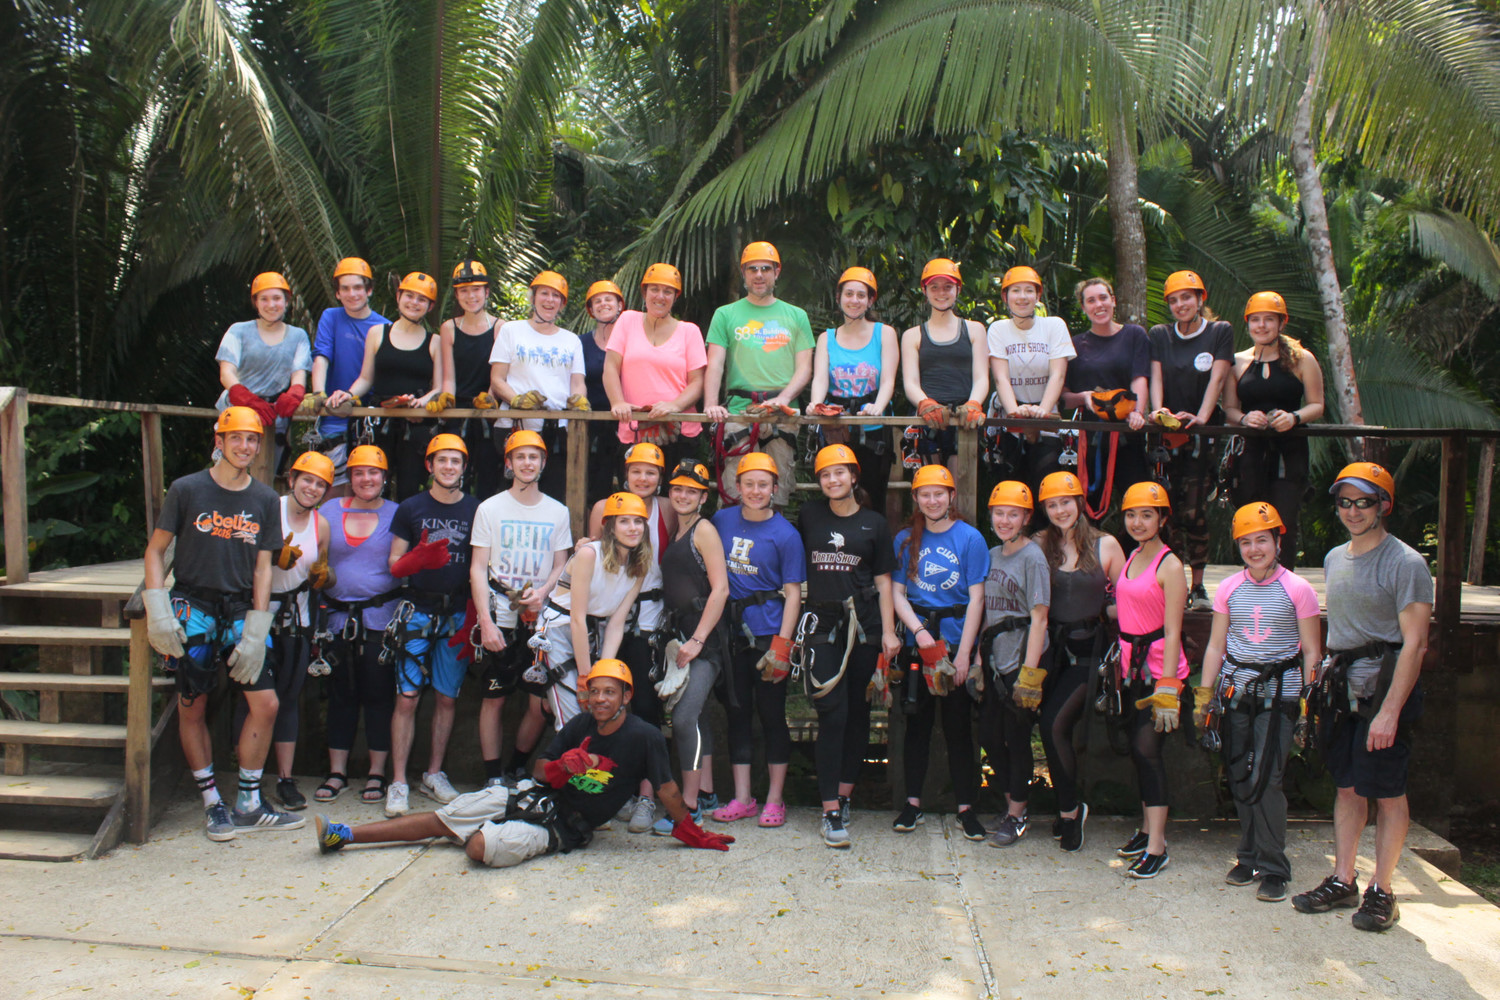 North Shore High School students and faculty donned safety gear before zip lining through the trees of Belize